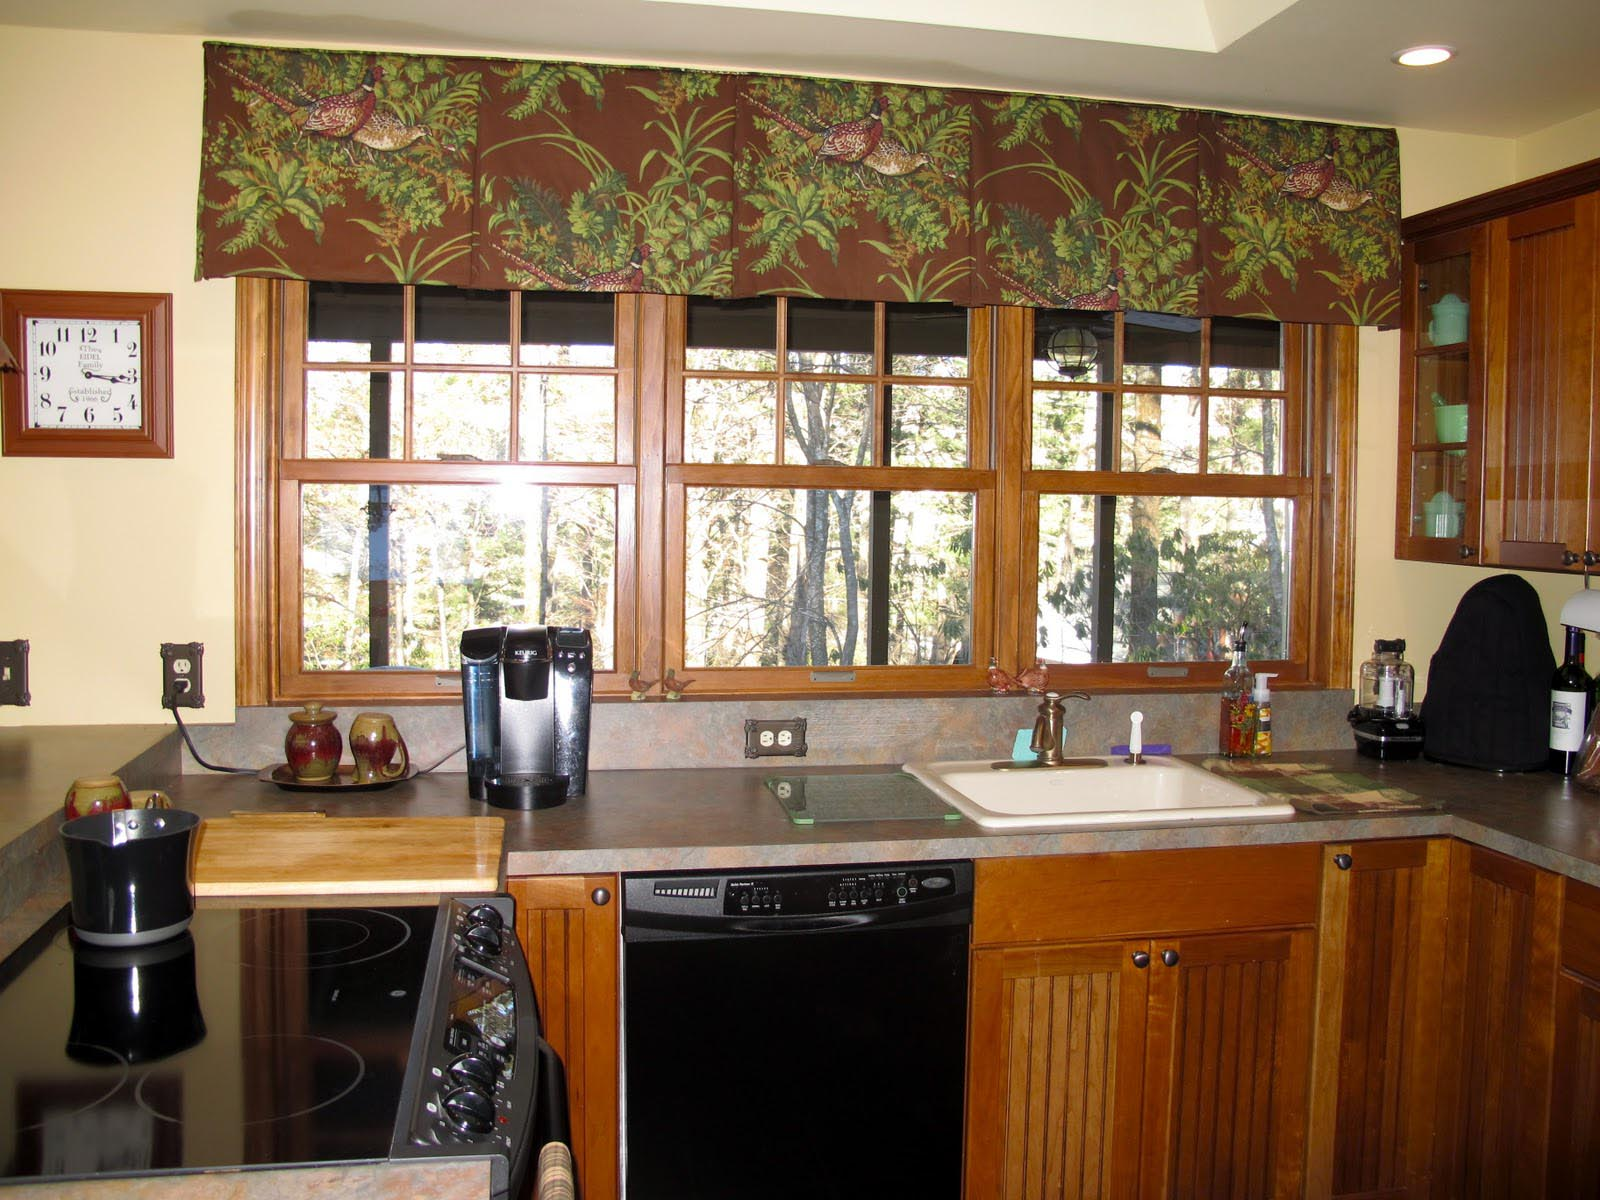 Red Kitchen Curtains And Valances | Window Treatments Design Ideas